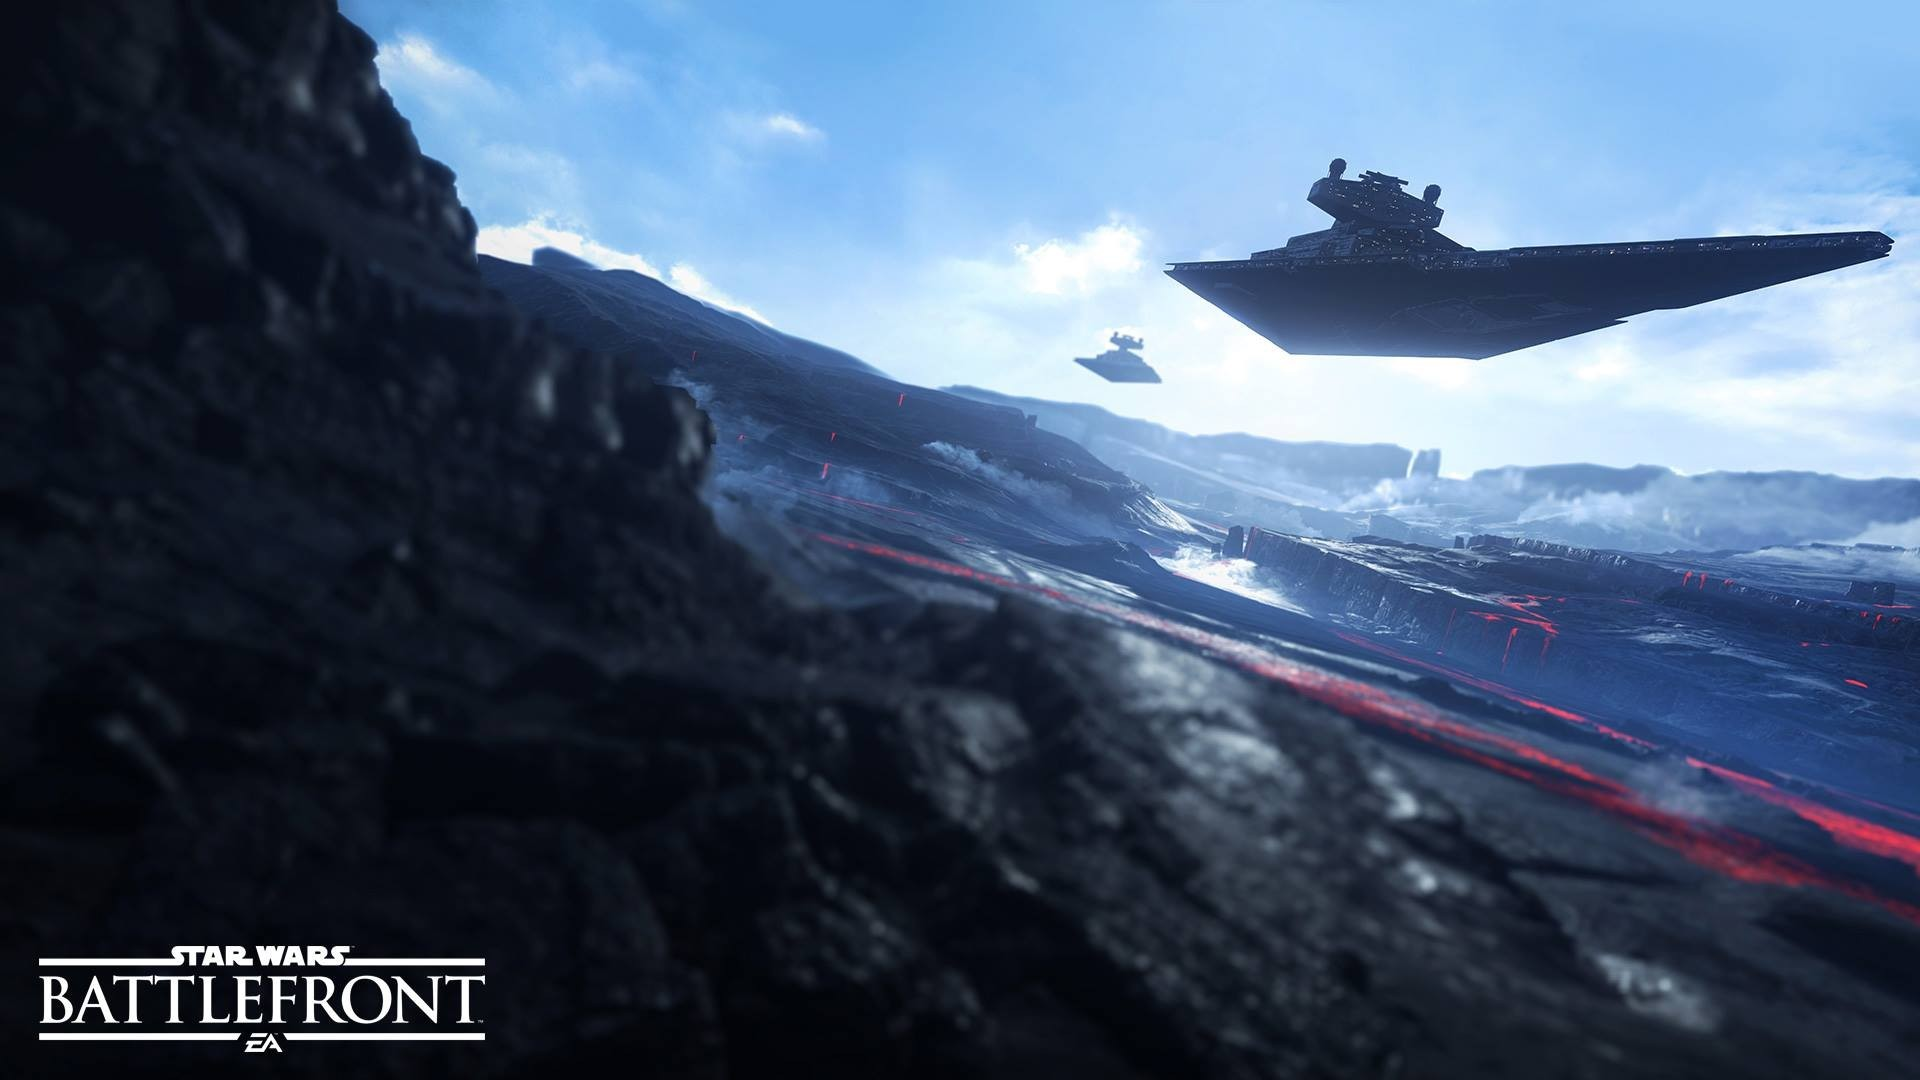 1920x1080 Star Wars: Battlefront, Star Wars, Star Destroyer, Galactic Empire,  Sullust, Video Games, Spaceship Wallpapers HD / Desktop and Mobile  Backgrounds